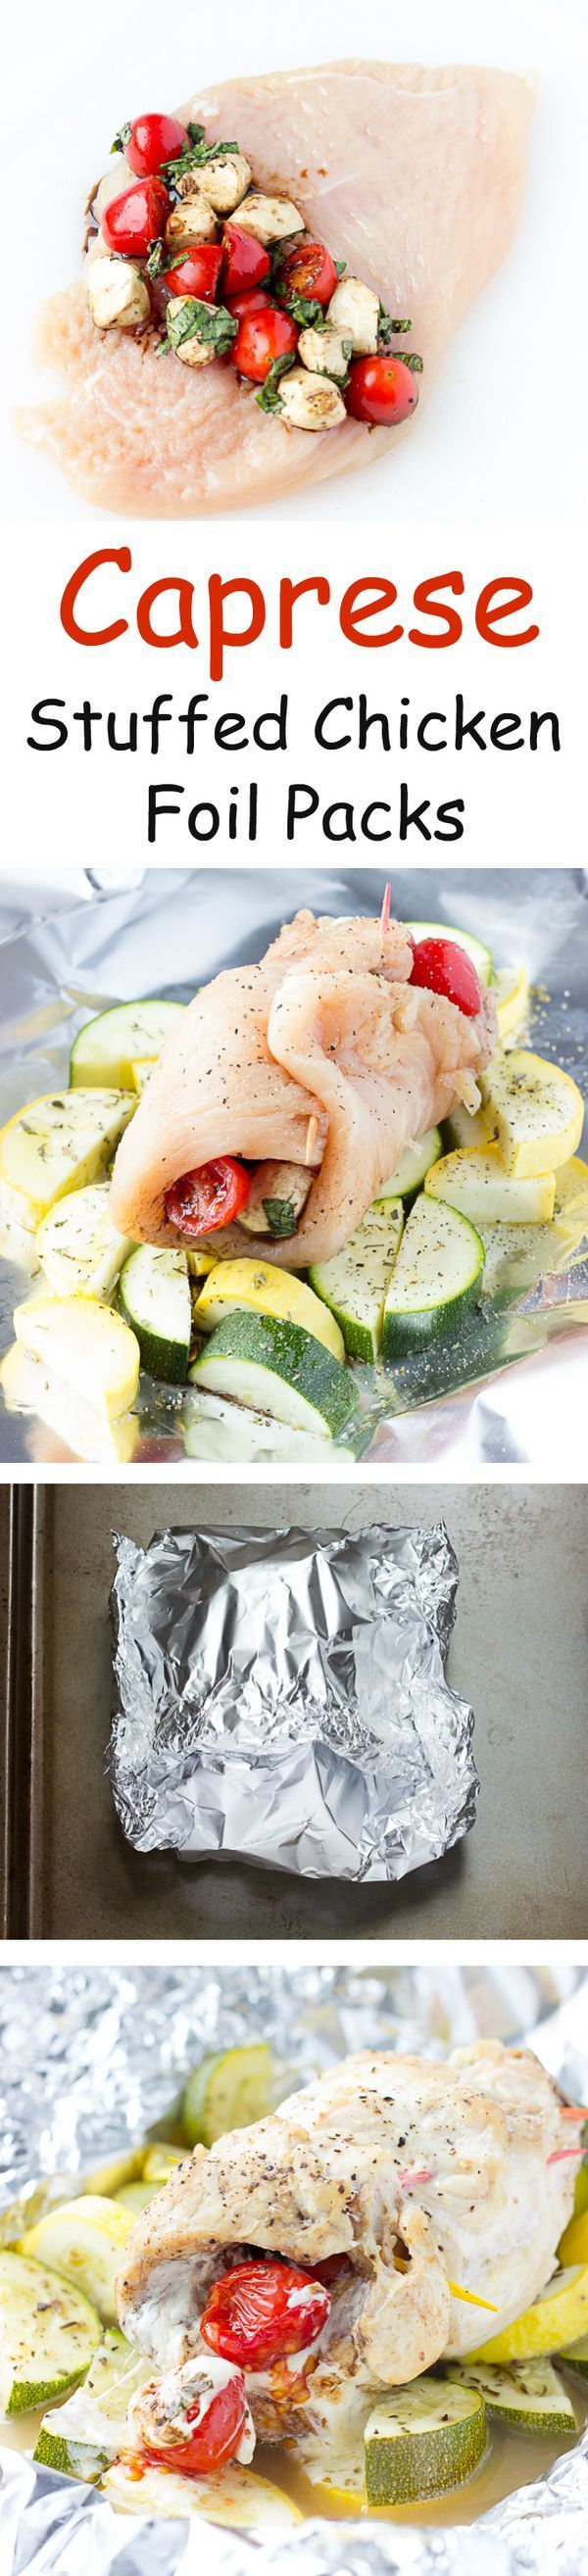 Caprese Stuffed #Chicken Foil Packs - A healthy dinner recipe that can be made in an oven, on a grill, or over a campfire. Chicken stuffed with caprese salad, over seasoned veggies, wrapped up in foil packets.